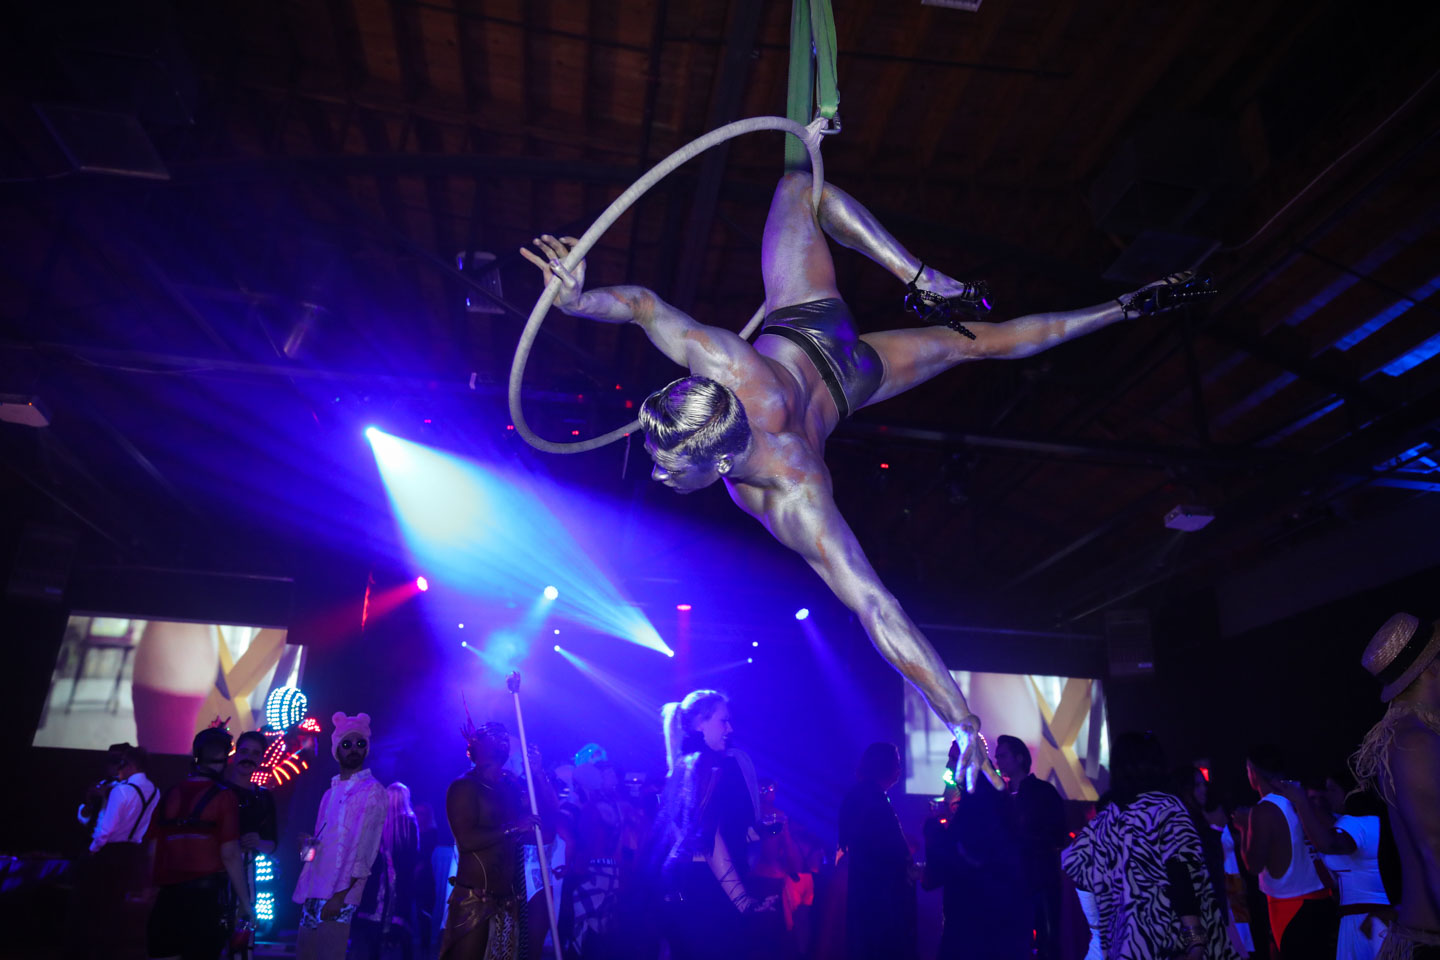 Aerialist on a hoop